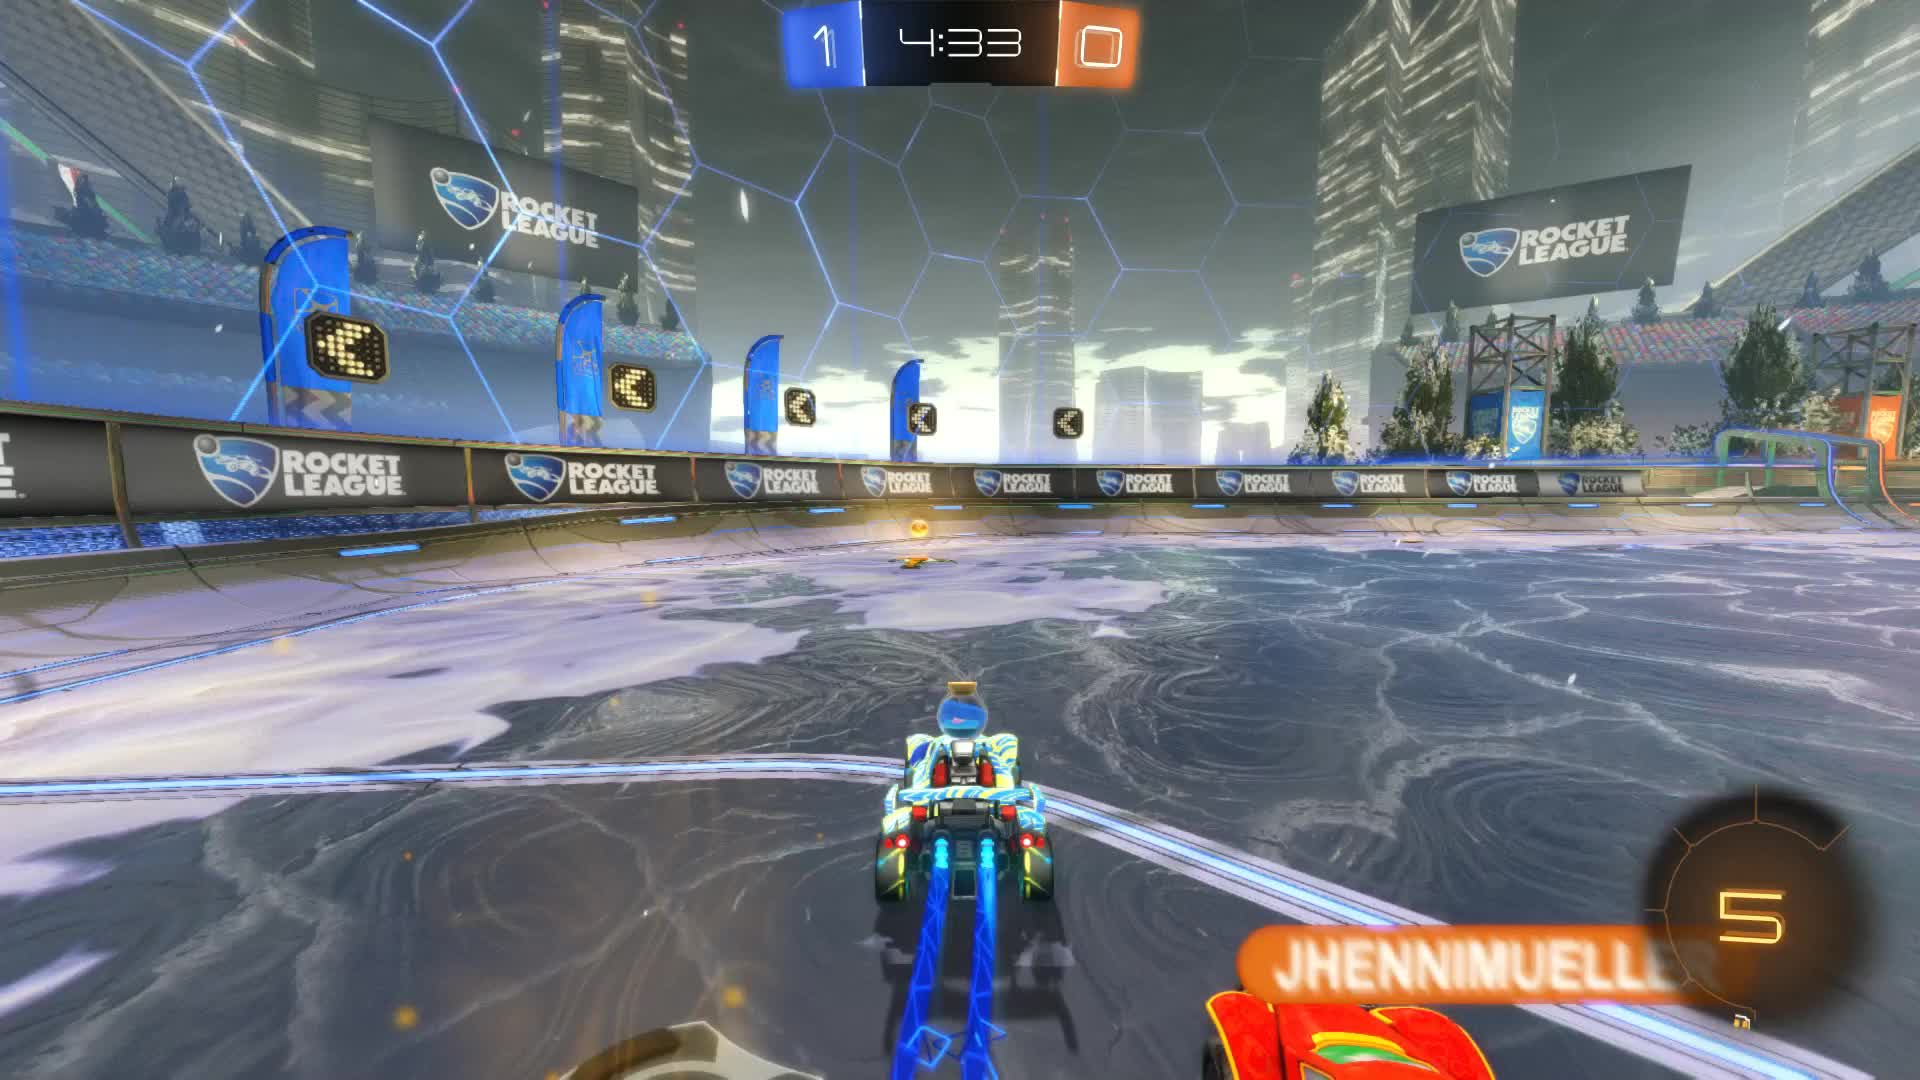 Gif Your Game, GifYourGame, Goal, Rocket League, RocketLeague, SlothInFlippyCar, Goal 2: SlothInFlippyCar GIFs